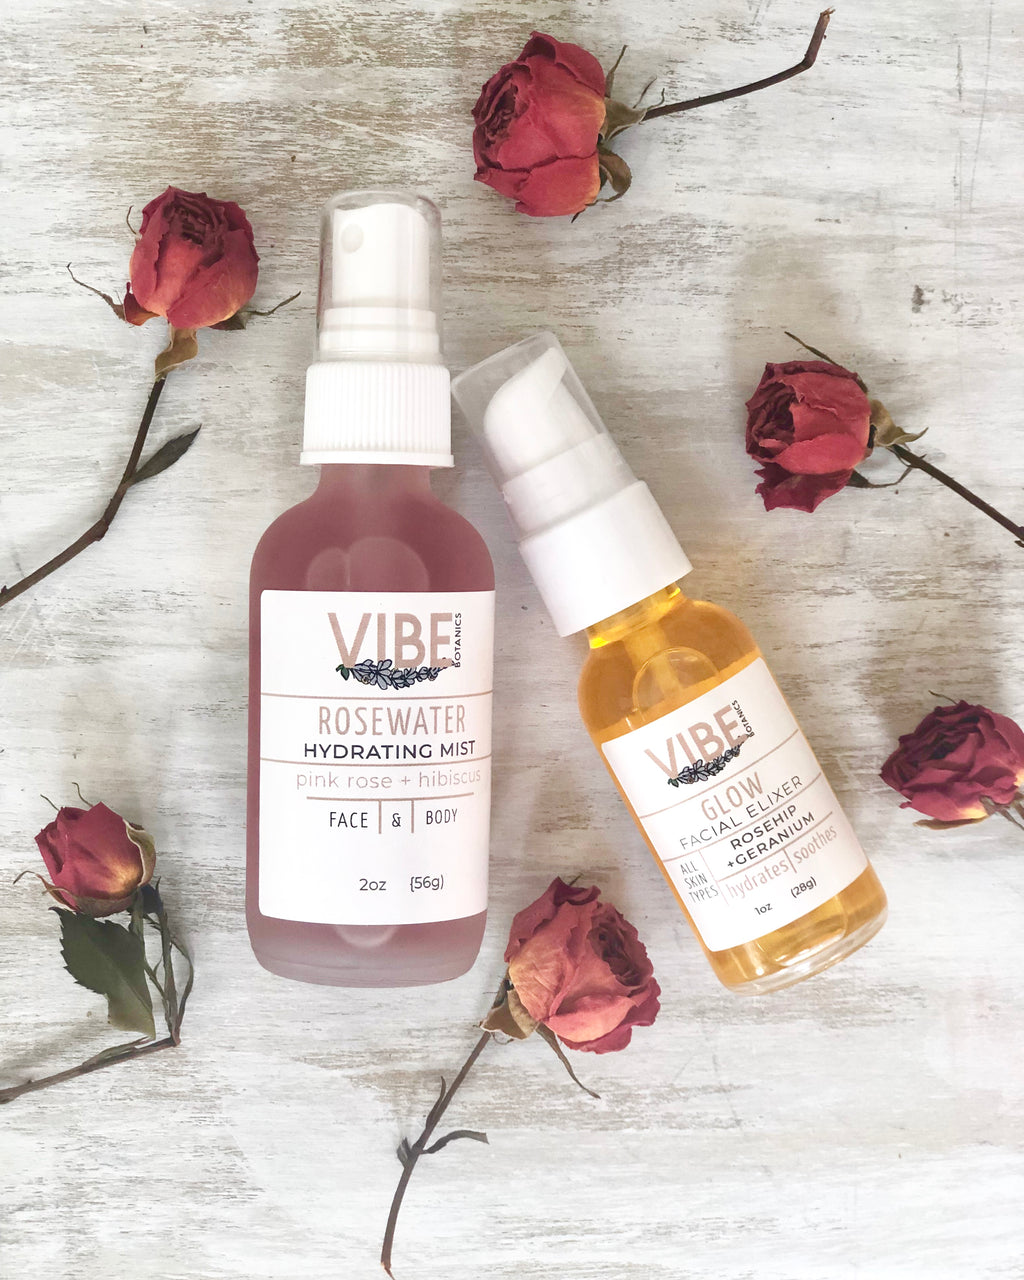 ROSEWATER Hydrating Mist + GLOW Facial Oil